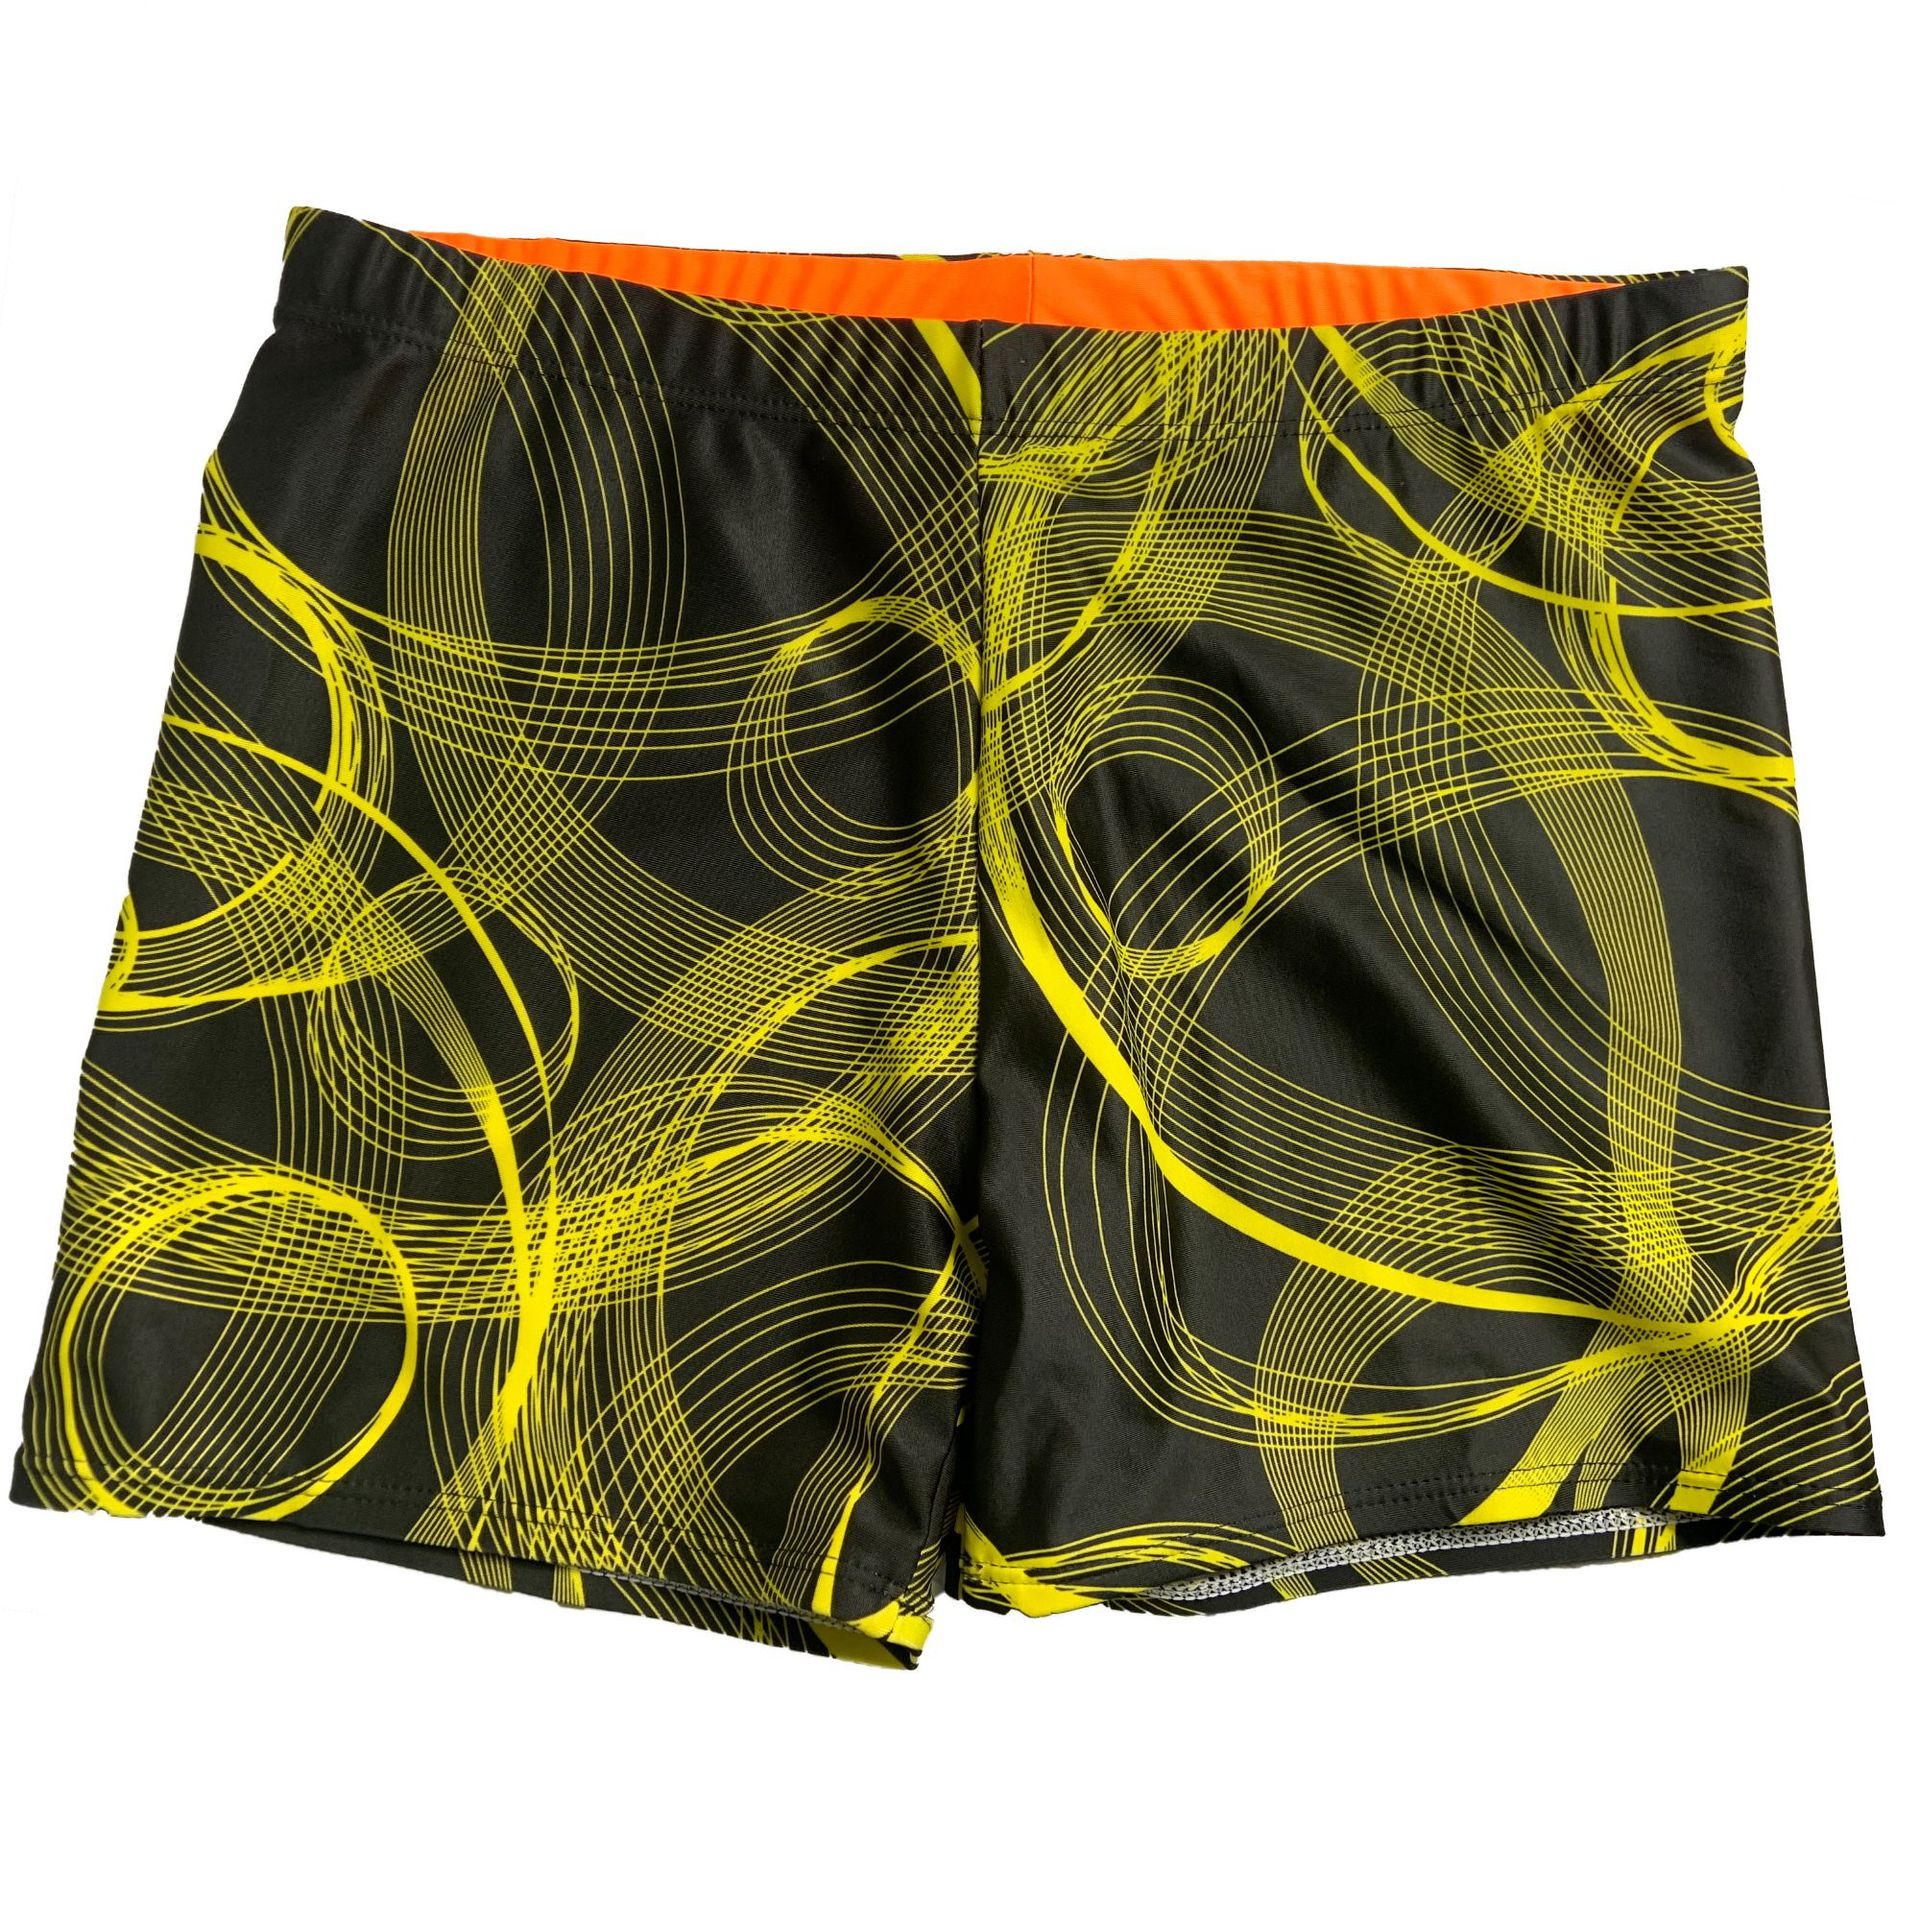 Full Printed Lines MEN'S Swimming Trunks Zhuo Lang 5 Men's Swimming Trunks Dacron Swimming Trunks